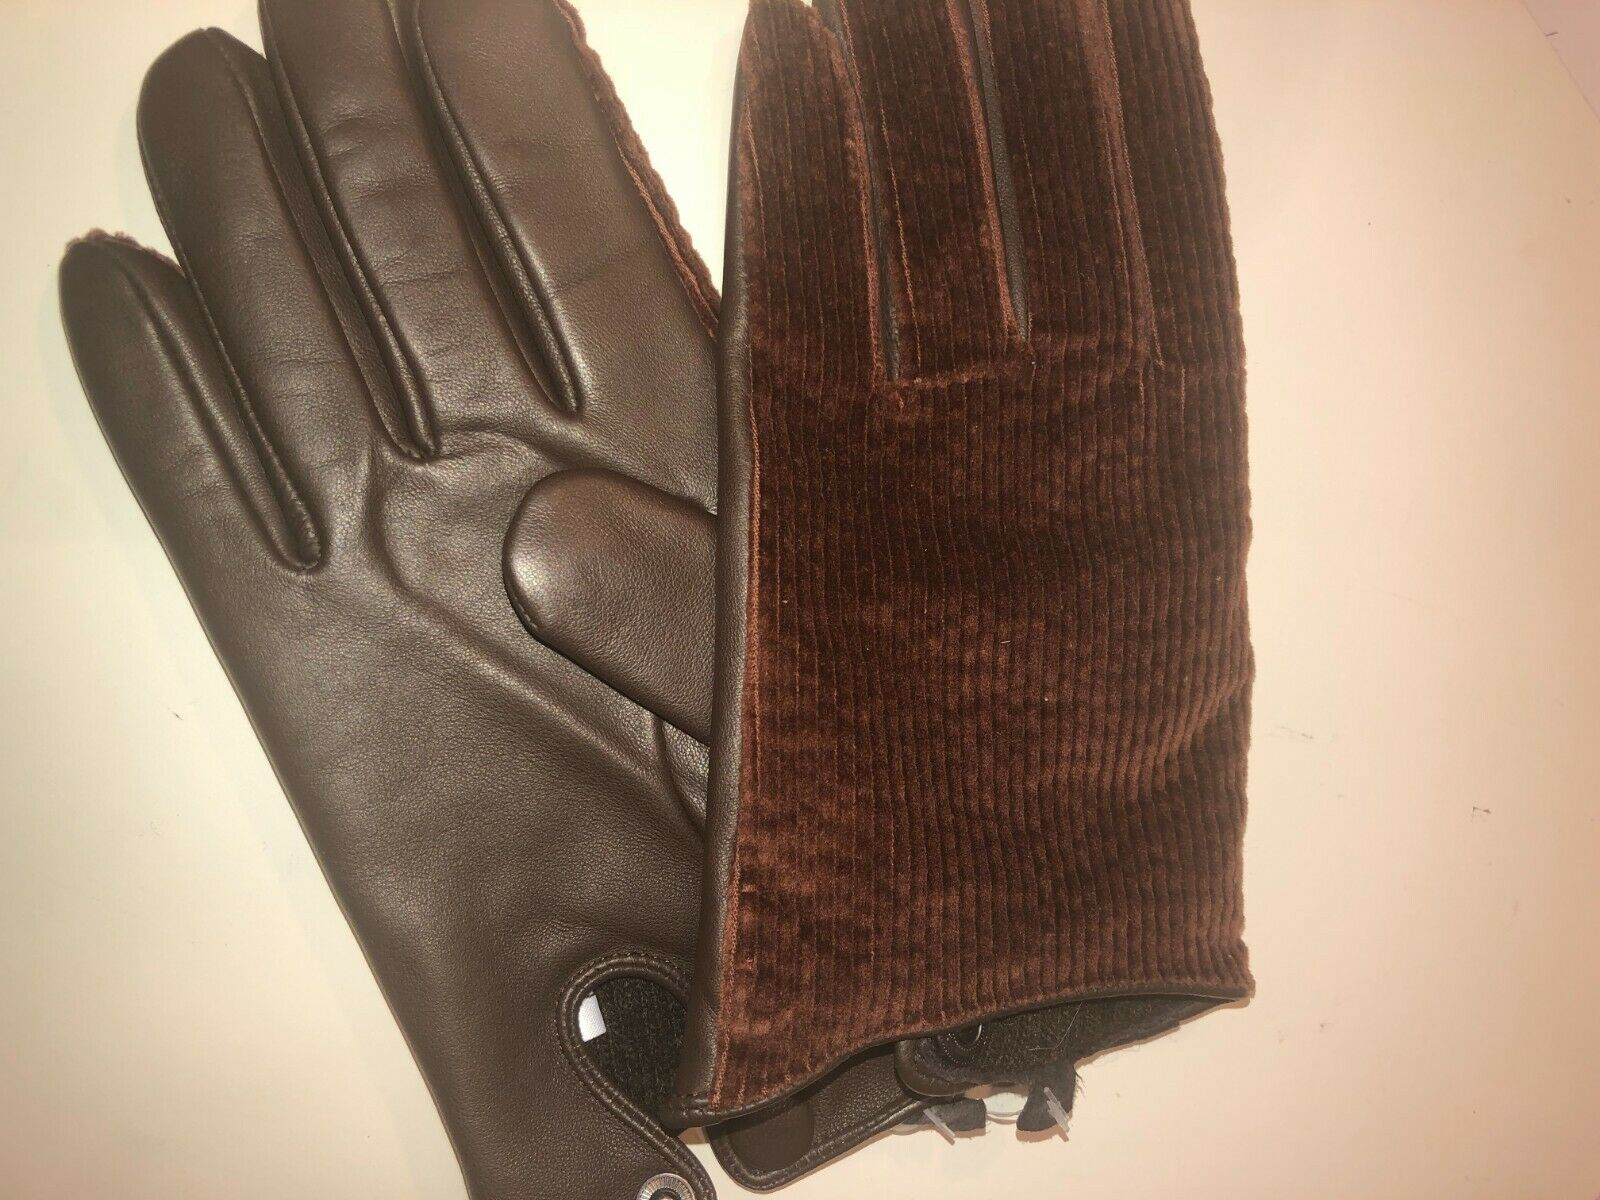 Gloves new men's leather brown Made in Italy size L